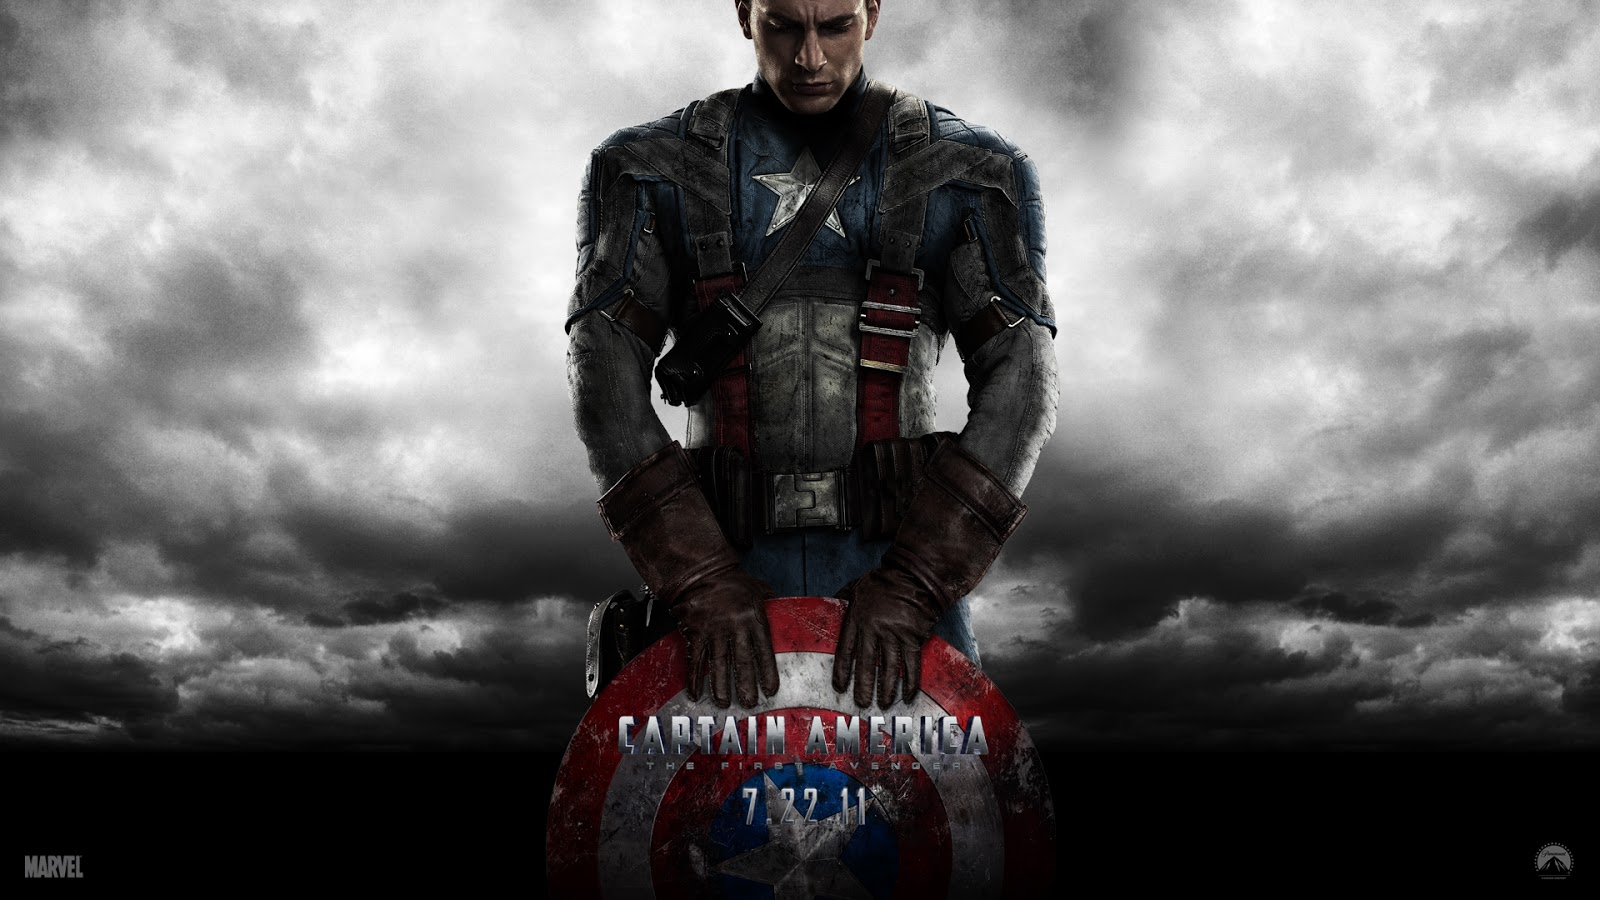 Captain America The First Soldier Movie Wallpaper